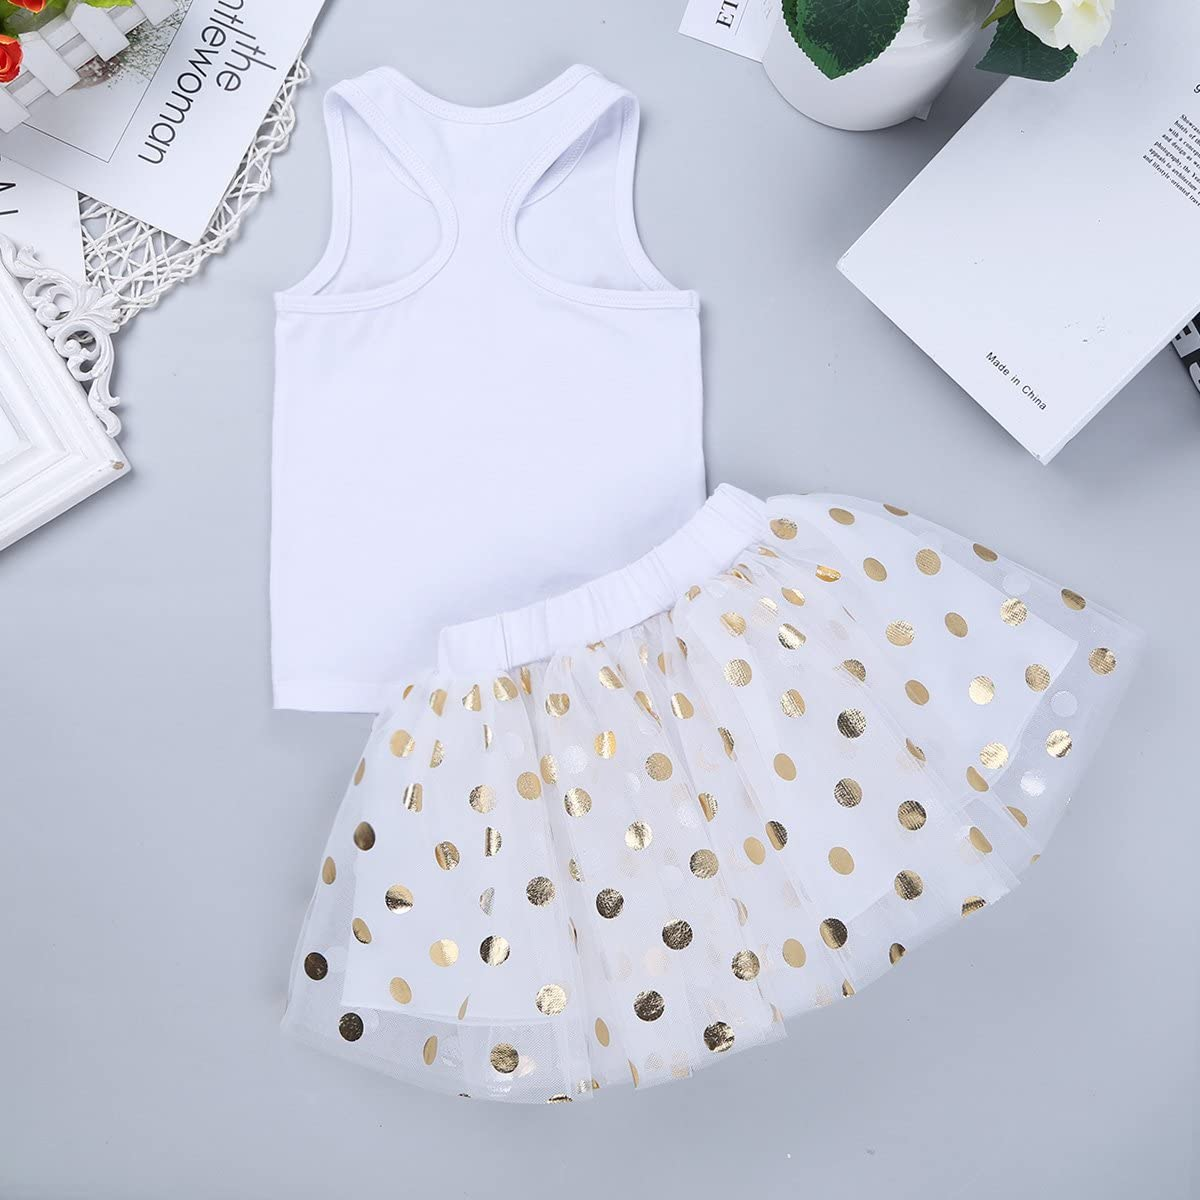 Freebily Infant Baby Girls Fancy First//1st Birthday Outfit Princess Racer-Back T-Shirt Tops with Polka Dots Tutu Skirt